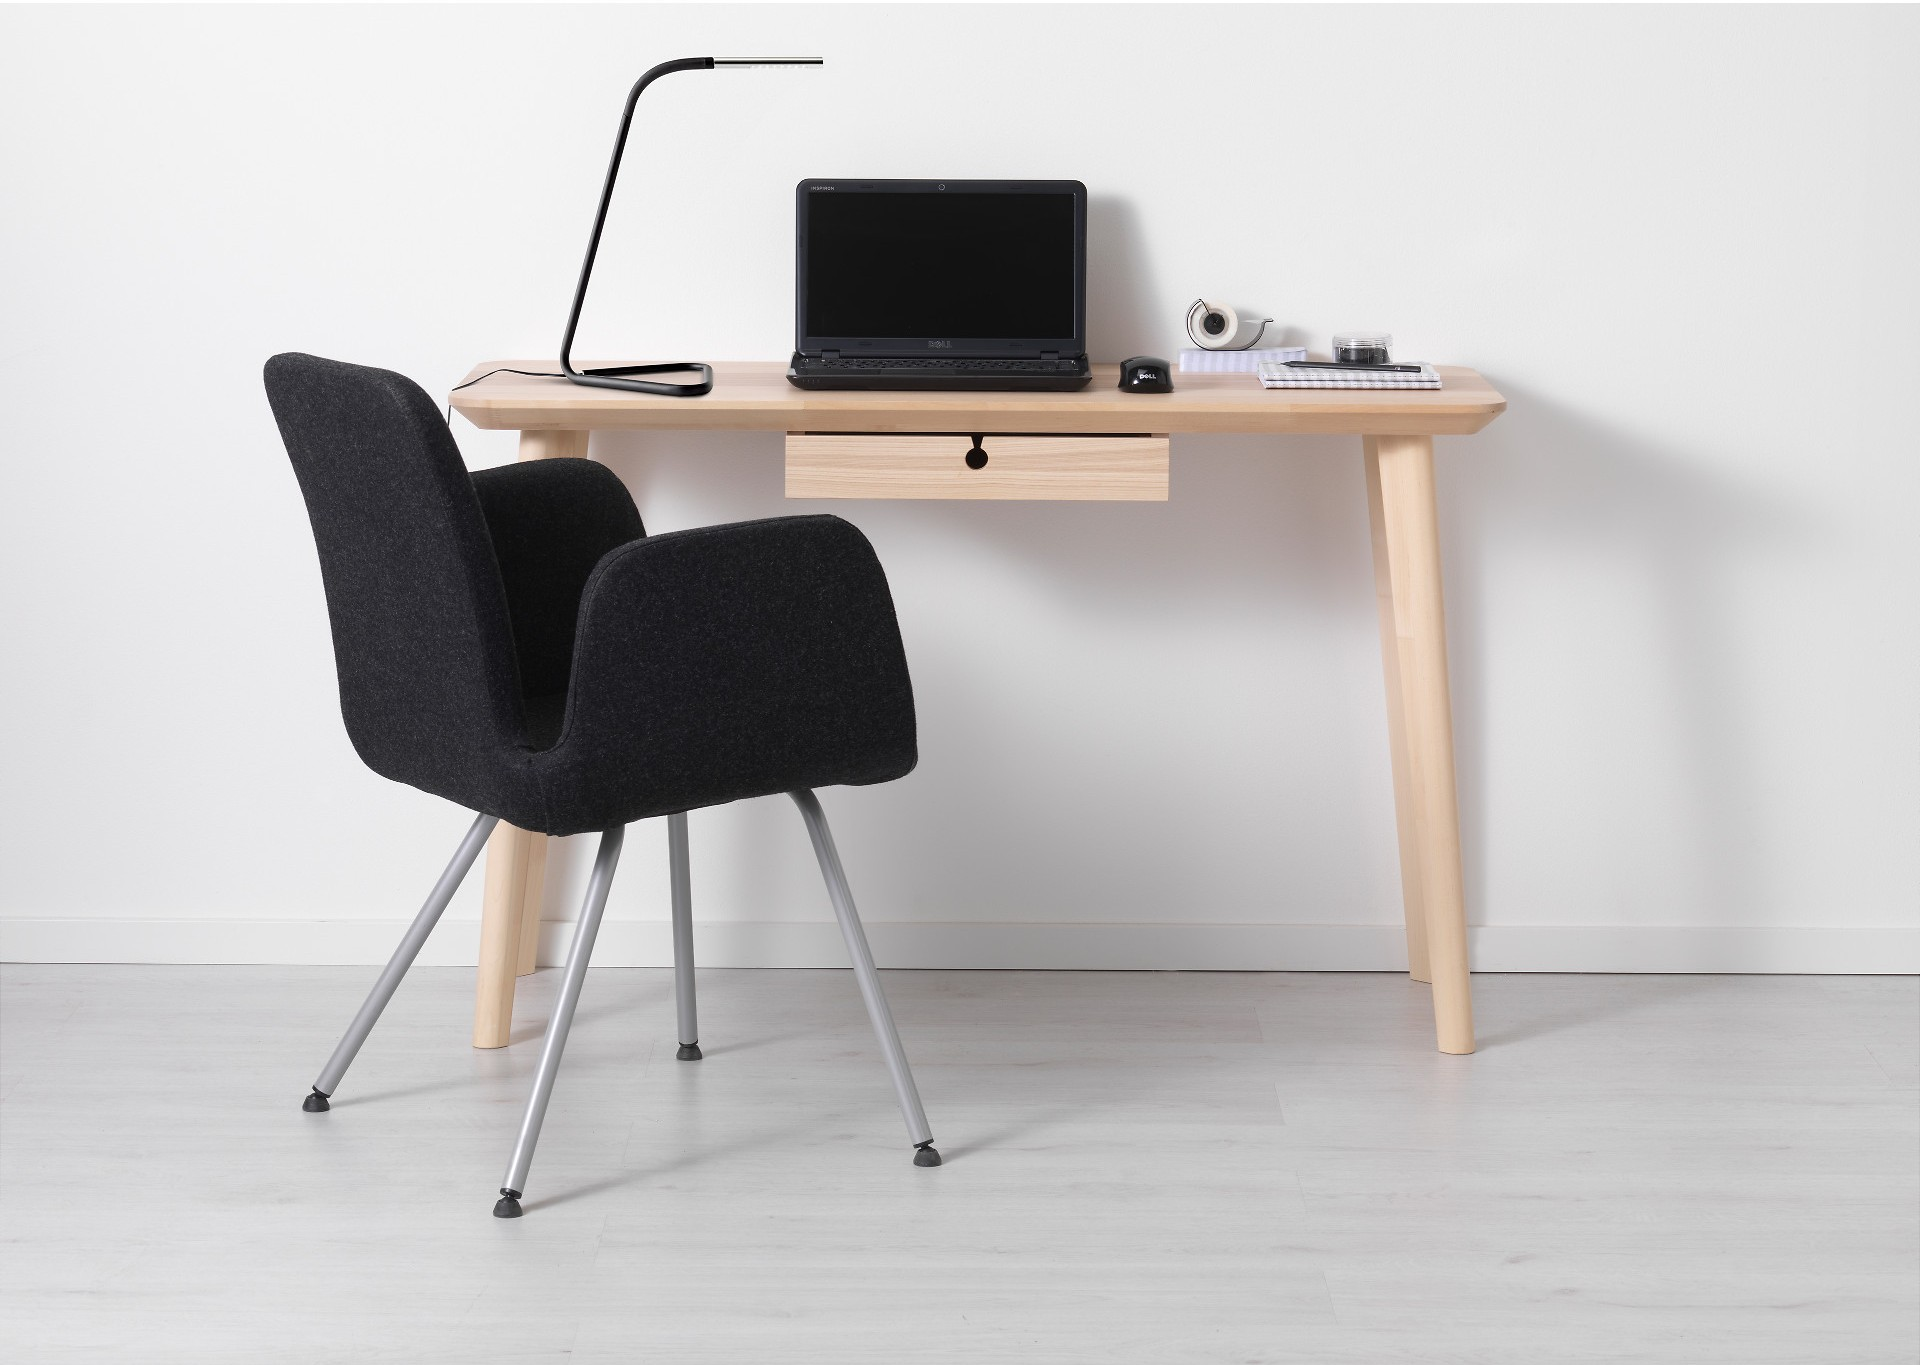 To share a tiny apartment with a boyfriend or girlfriend, downsize to a smaller desk like LISABO from IKEA.